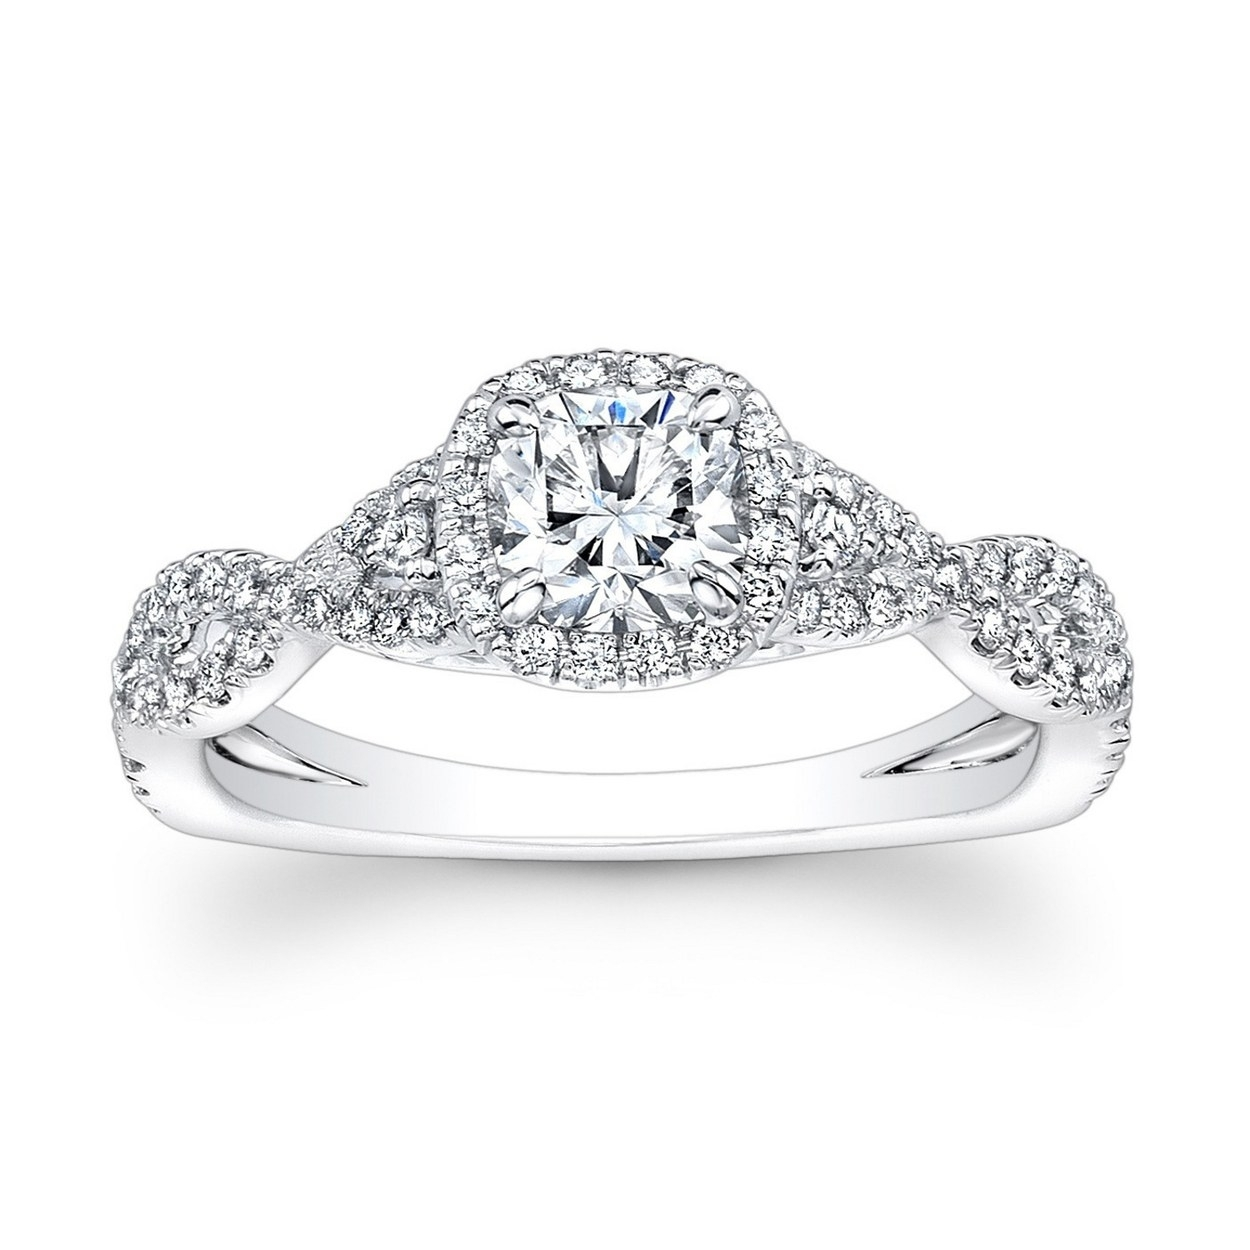 62 Diamond Engagement Rings Under $5,000 | Glamour With Regard To Most Up To Date Diamond Double Frame Vintage Style Rings (View 4 of 15)